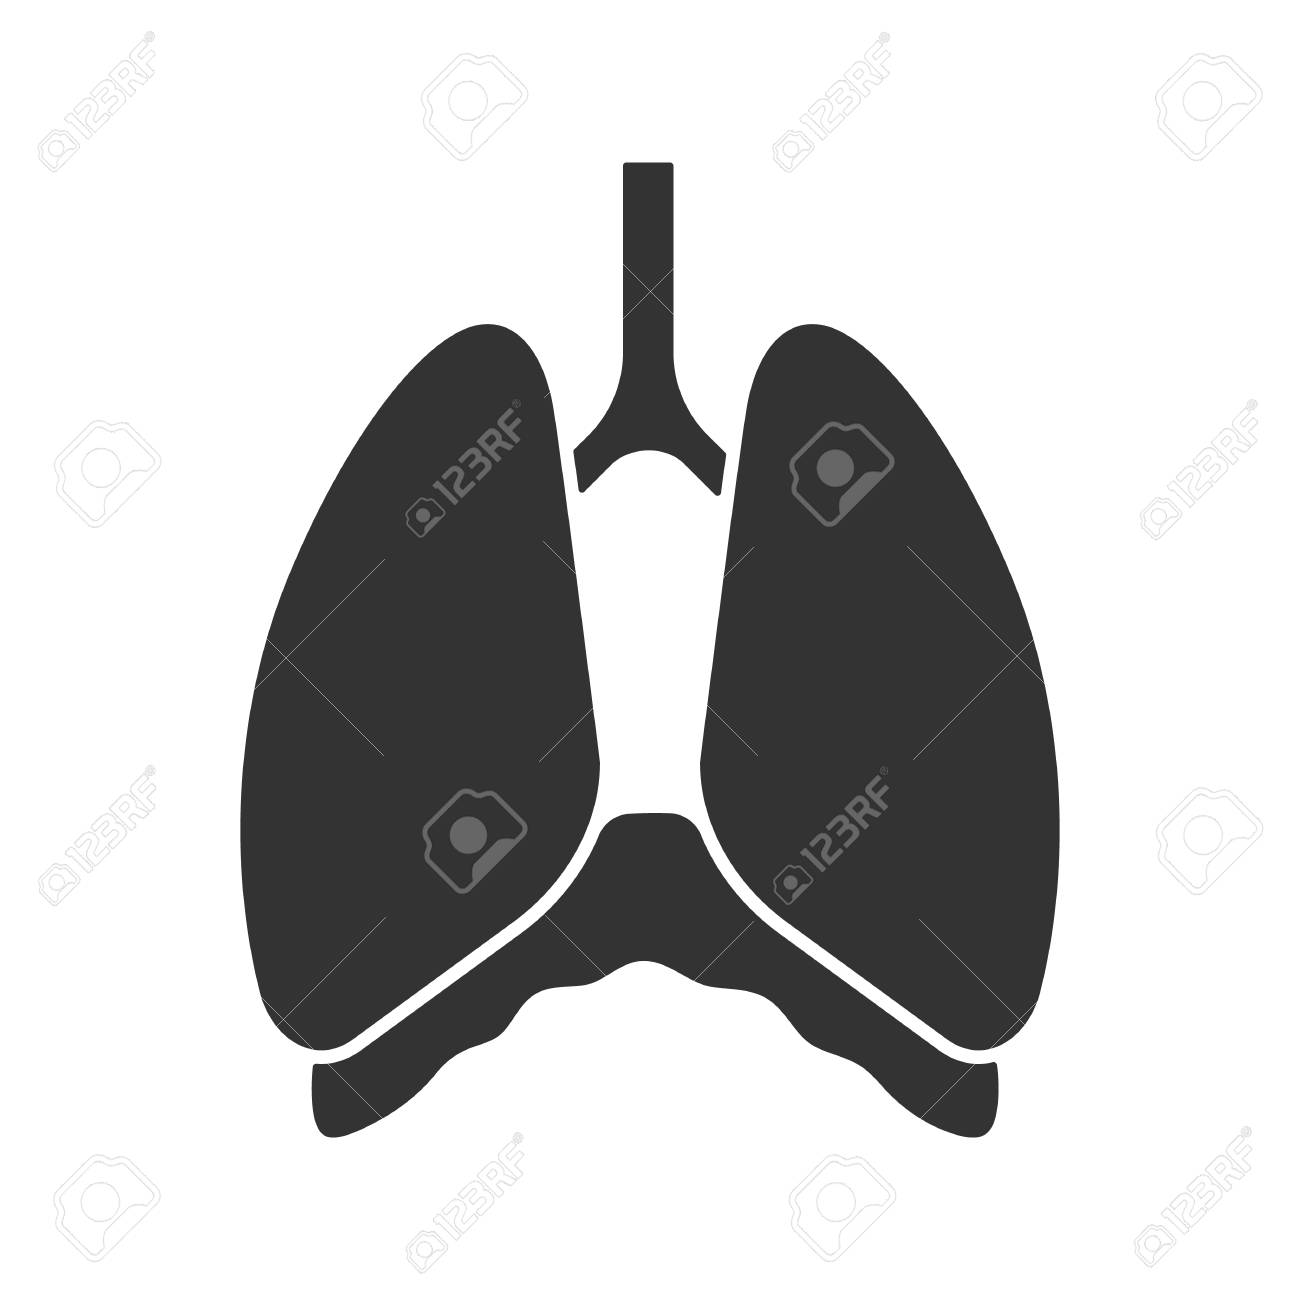 70bf3e01285 Vector isolated illustration. Thoracic cavity glyph icon. Diaphragm. Human  lungs. Silhouette symbol. Negative space.